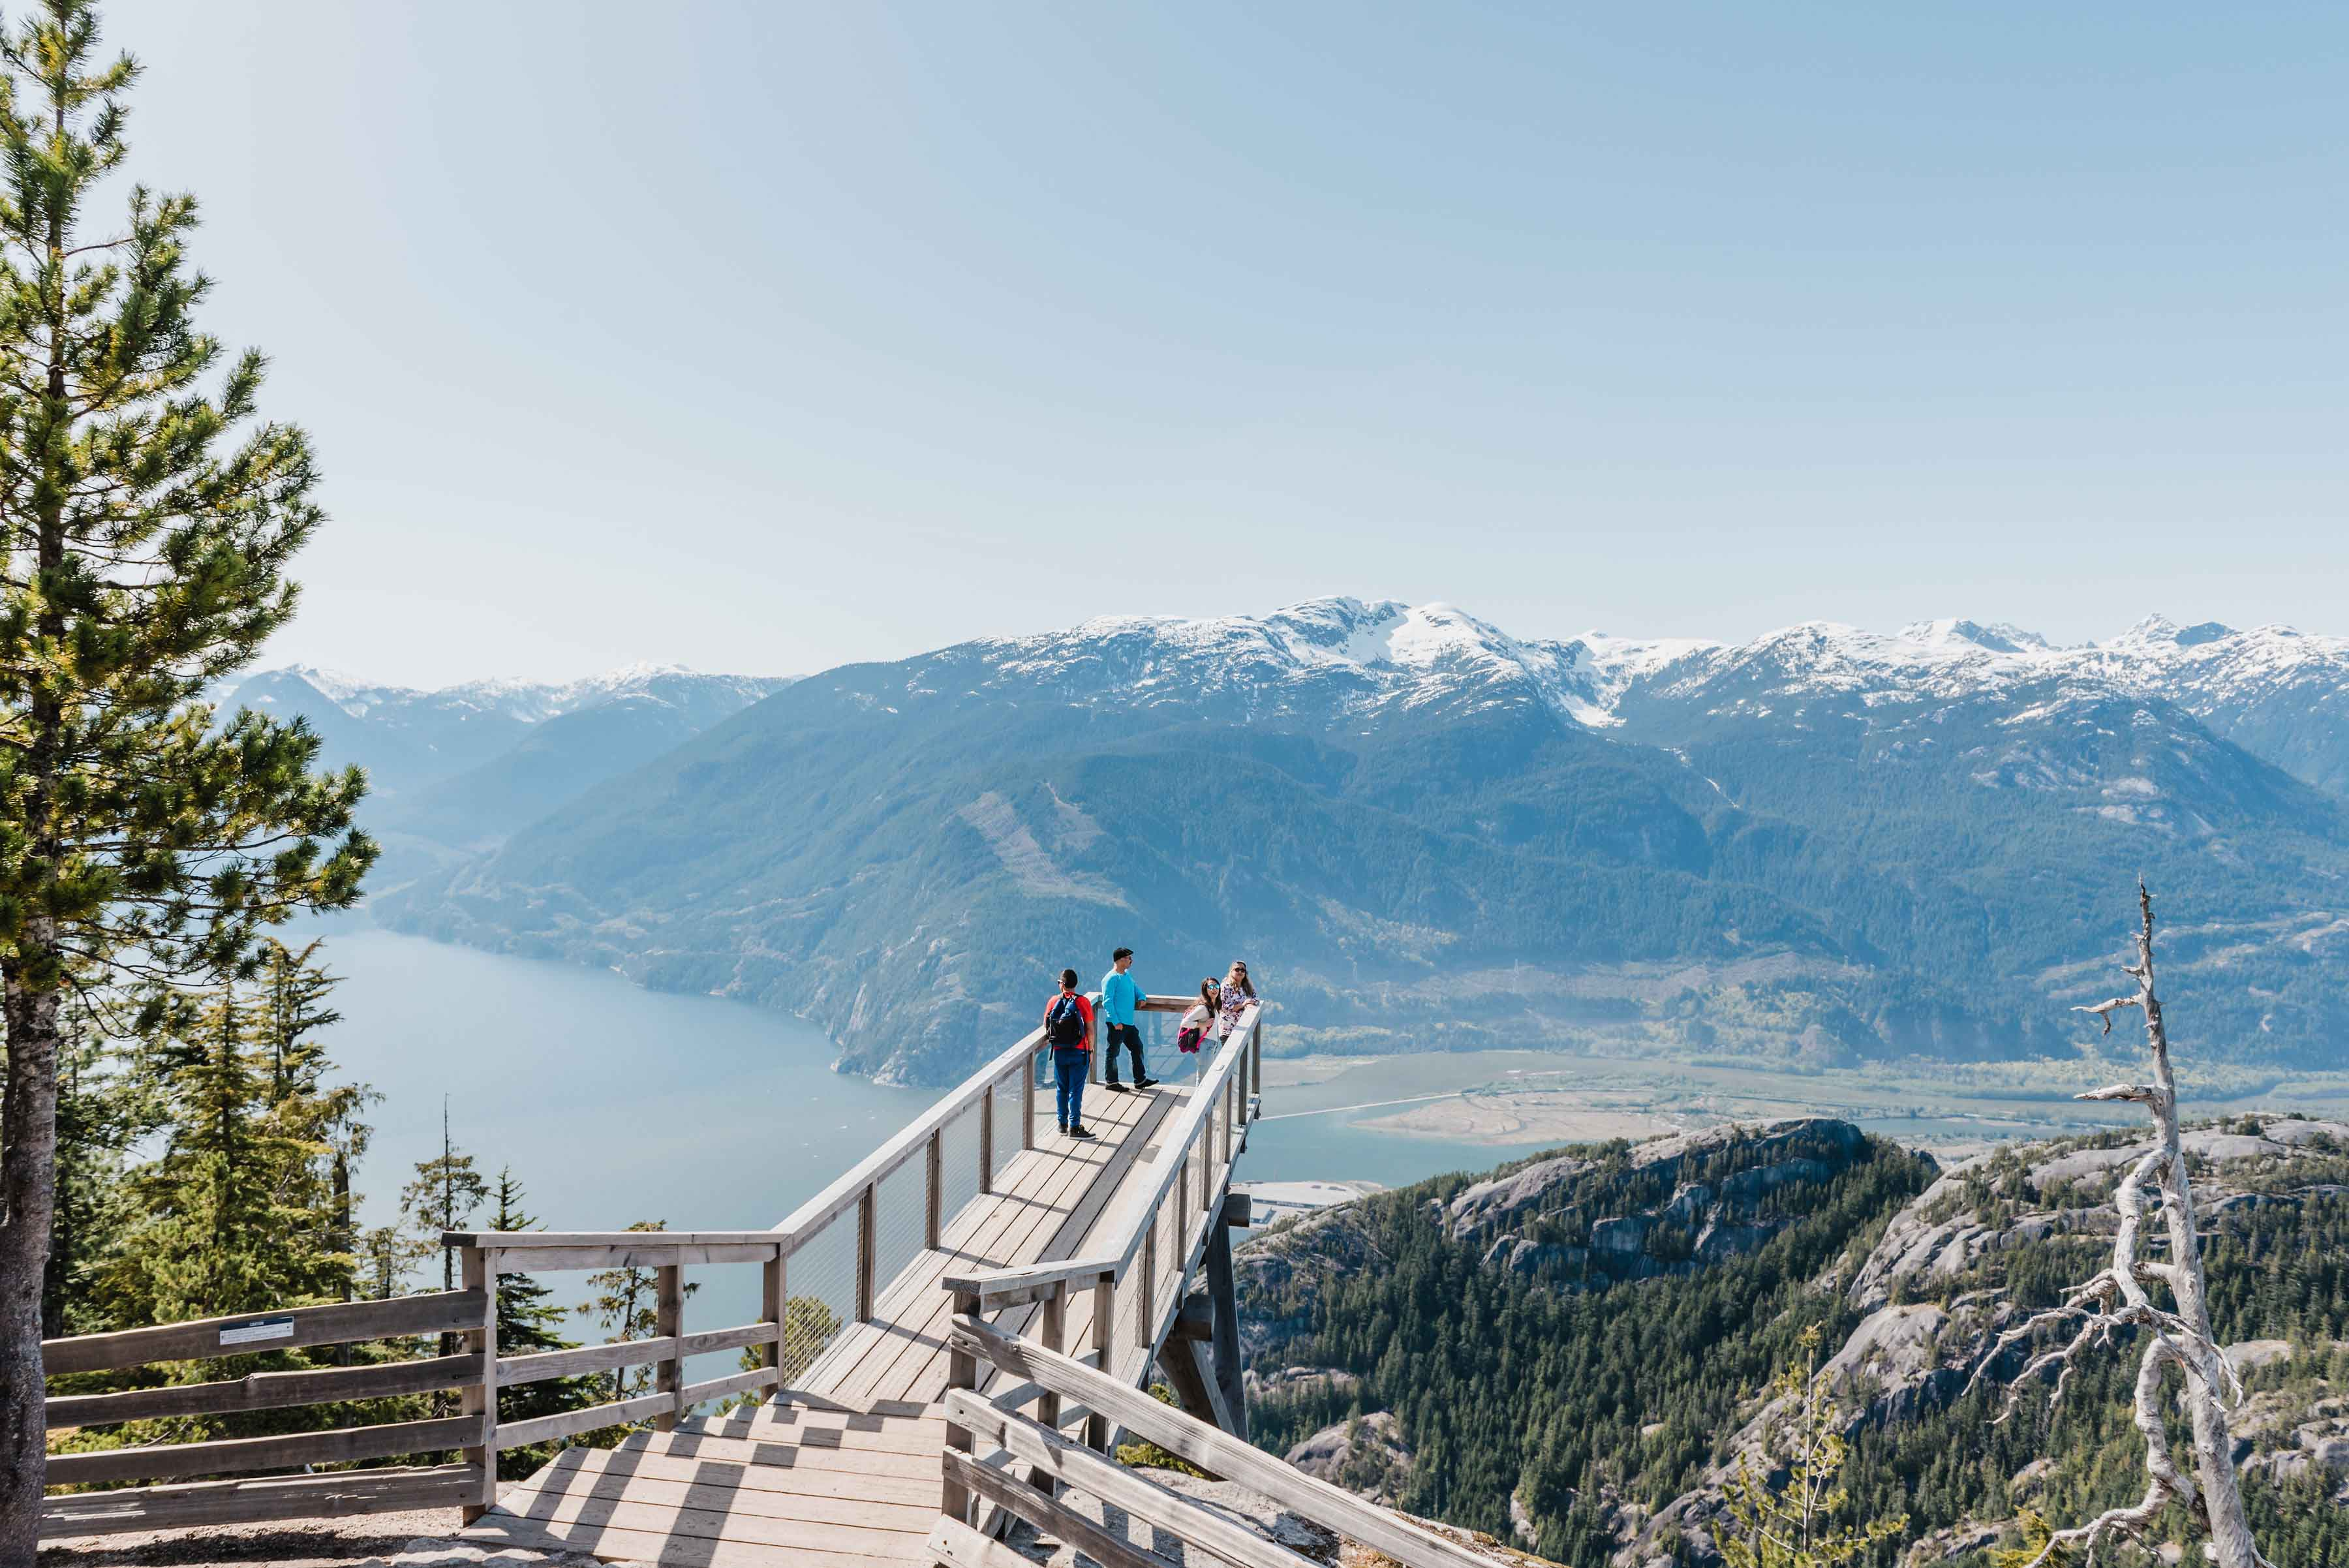 Top things to do near Vancouver - Chief Lookout - Sea to Sky Gondola opens. Photo Credit: Tara O'Grady